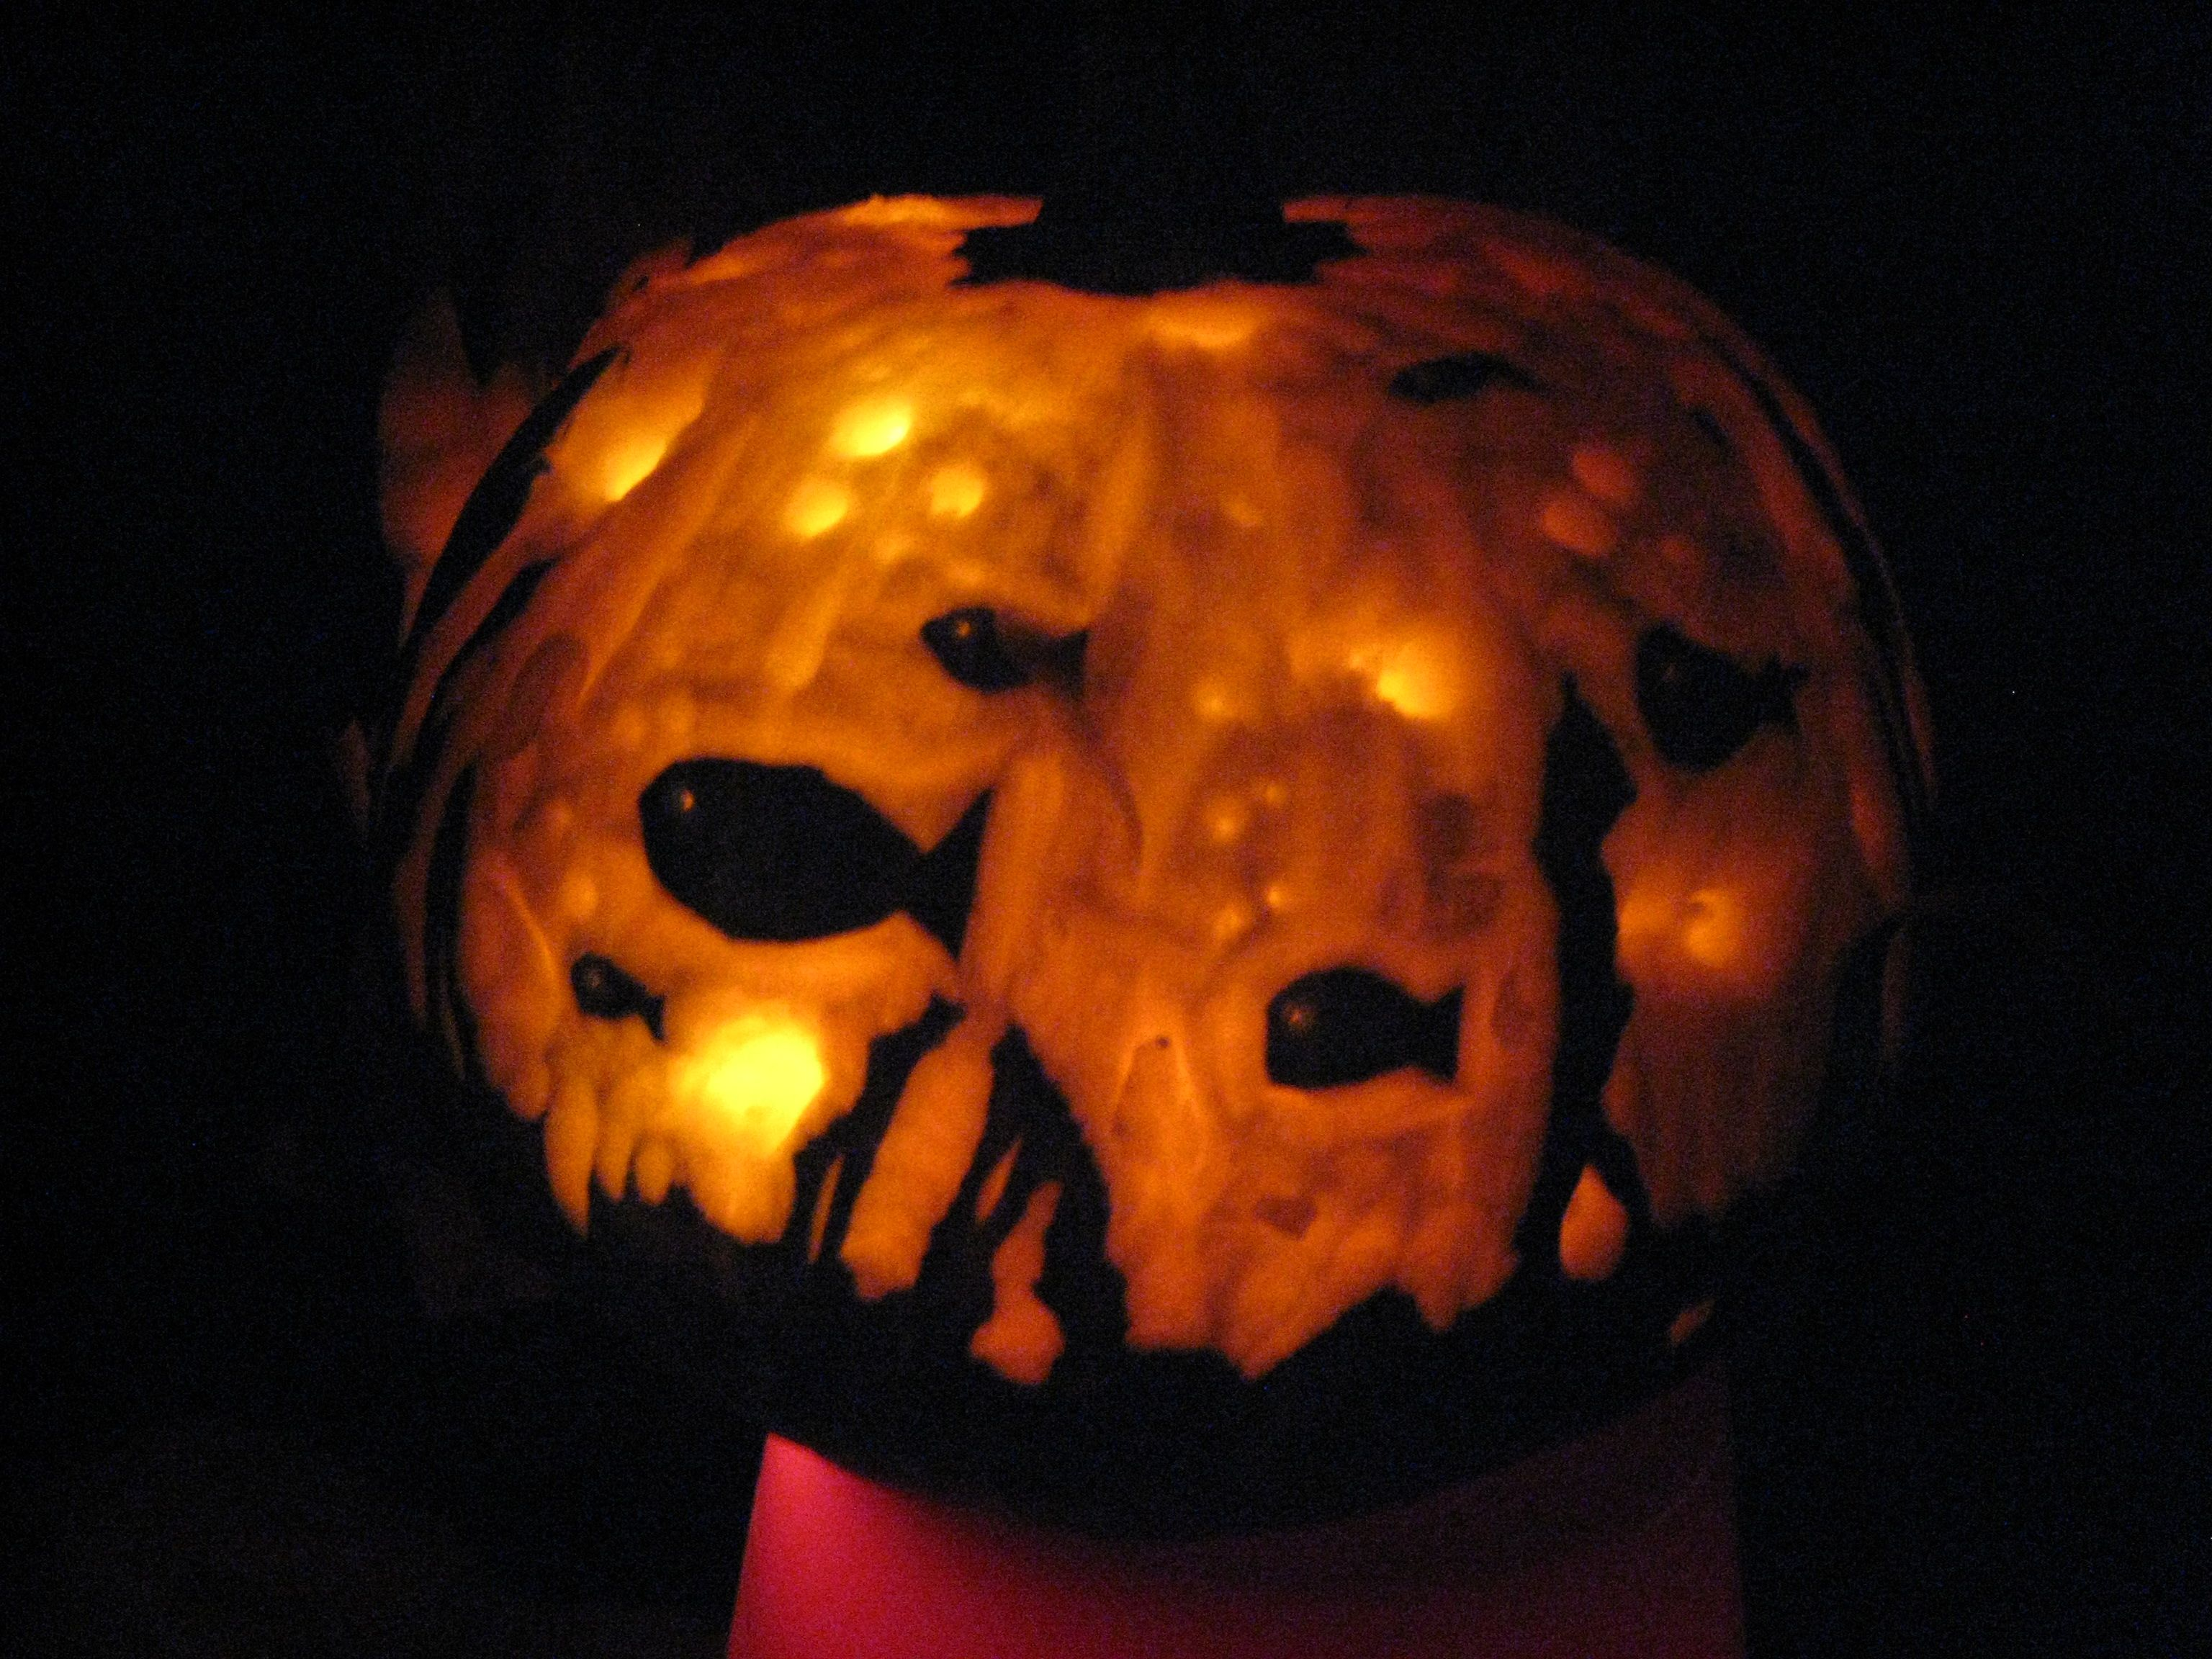 Fish bowl relief carved pumpkin | My creativity at work ...